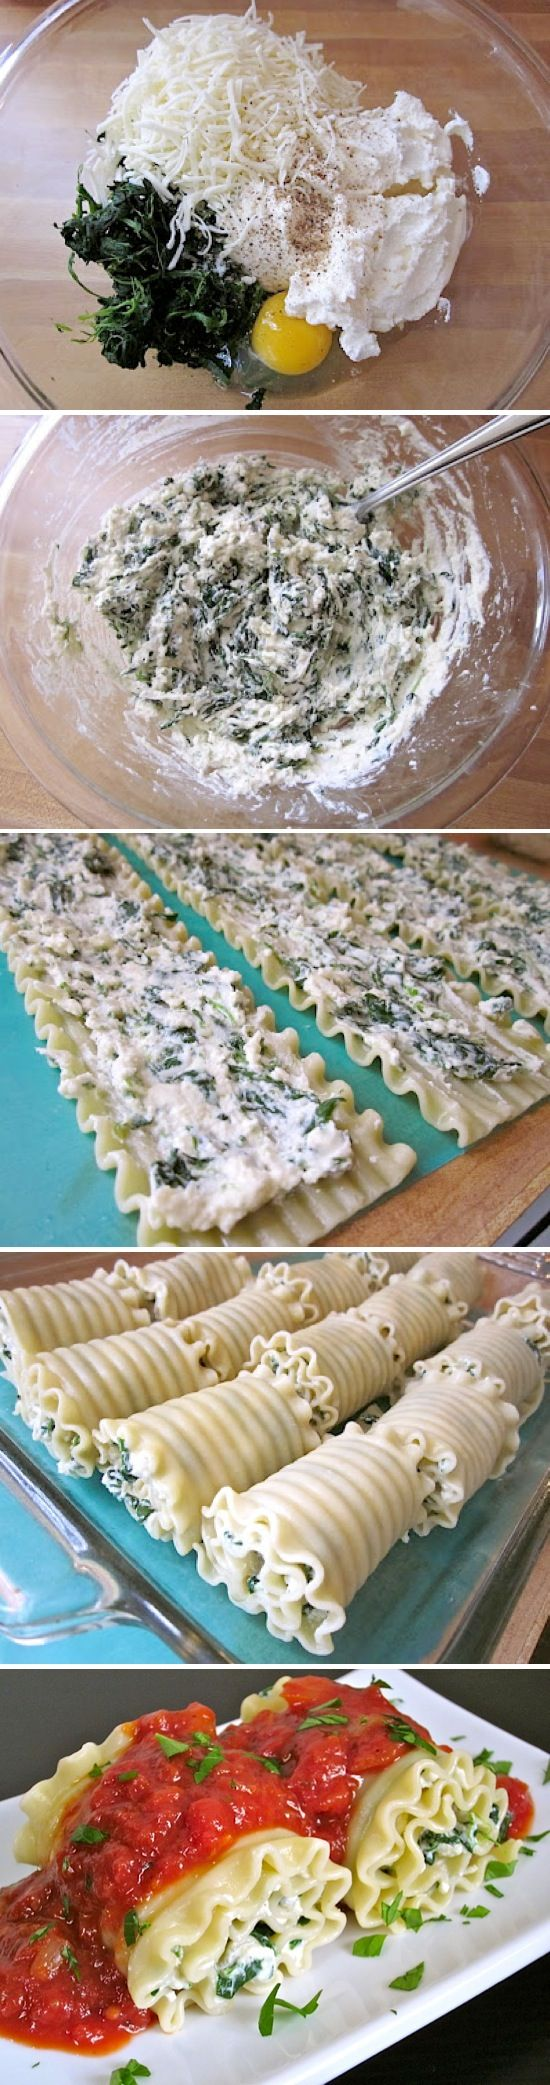 Spinach Lasagna Roll Ups Recipe - Budget Minded Meal Homestead Survival dinner